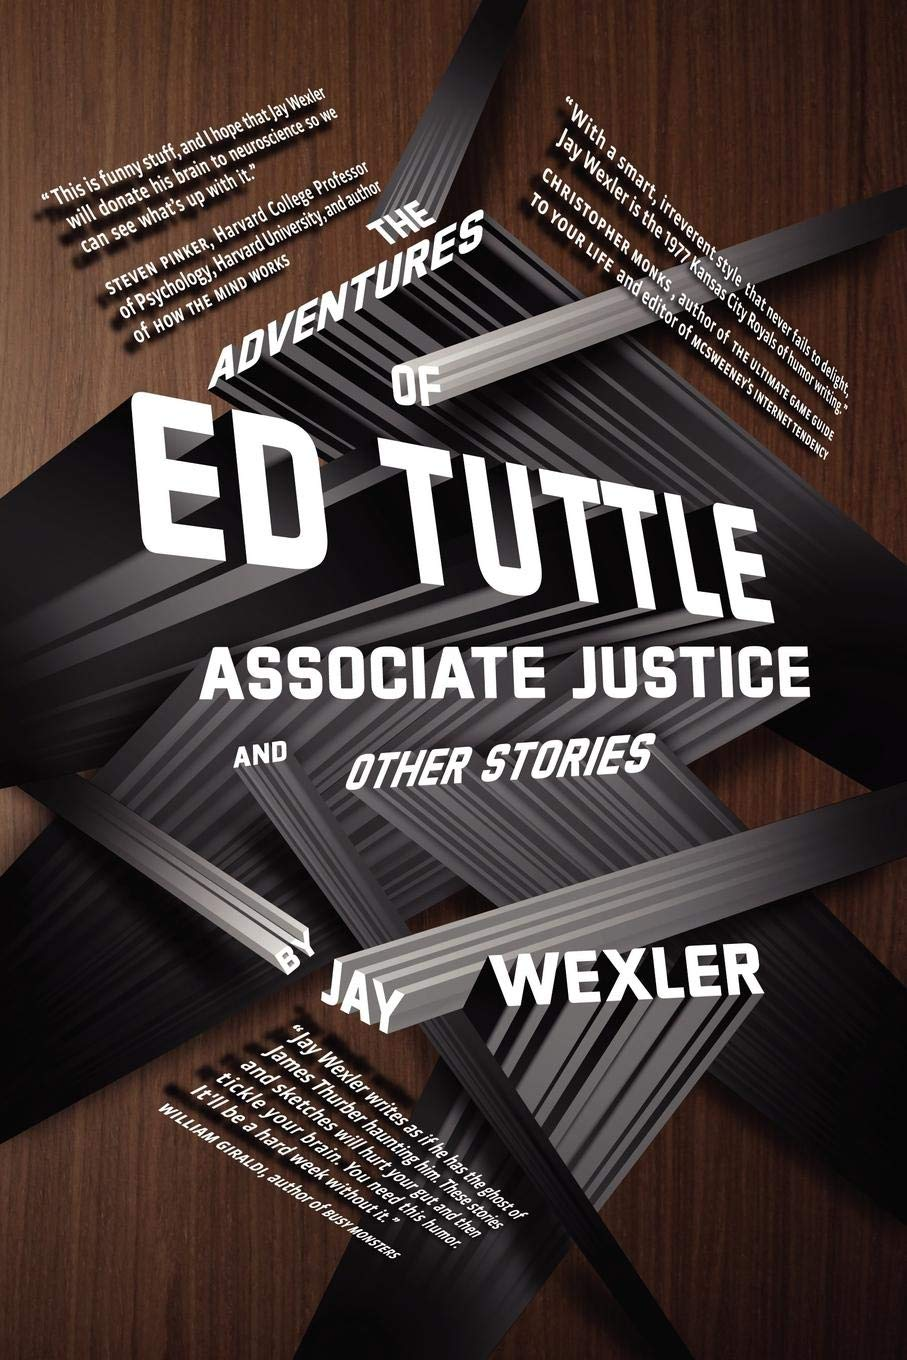 The Adventures Of Ed Tuttle Associate Justice And Other Stories